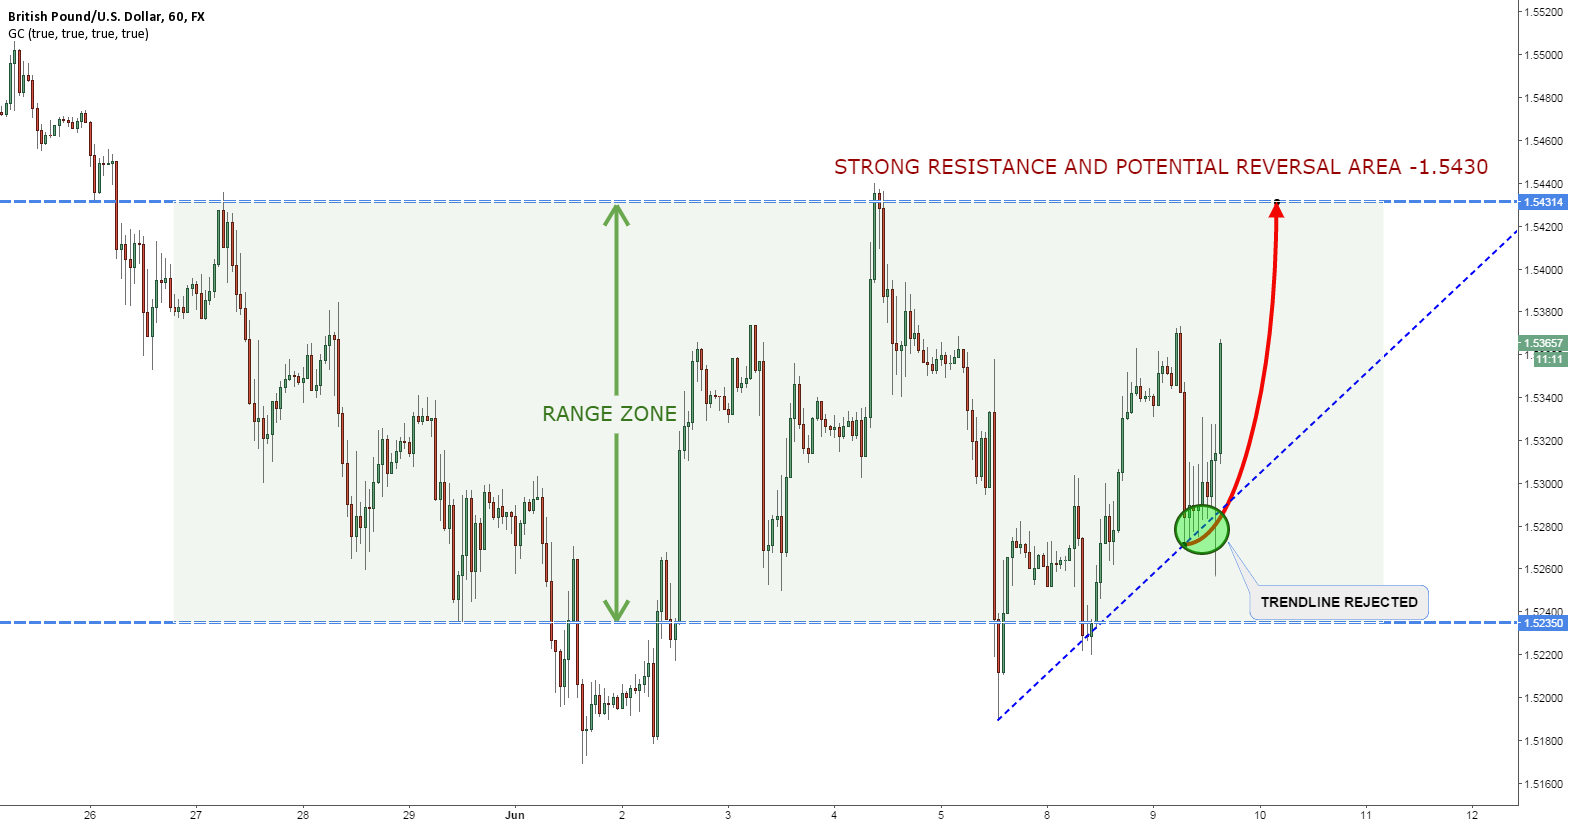 GBPUSD TO TEST THE RESISTANCE